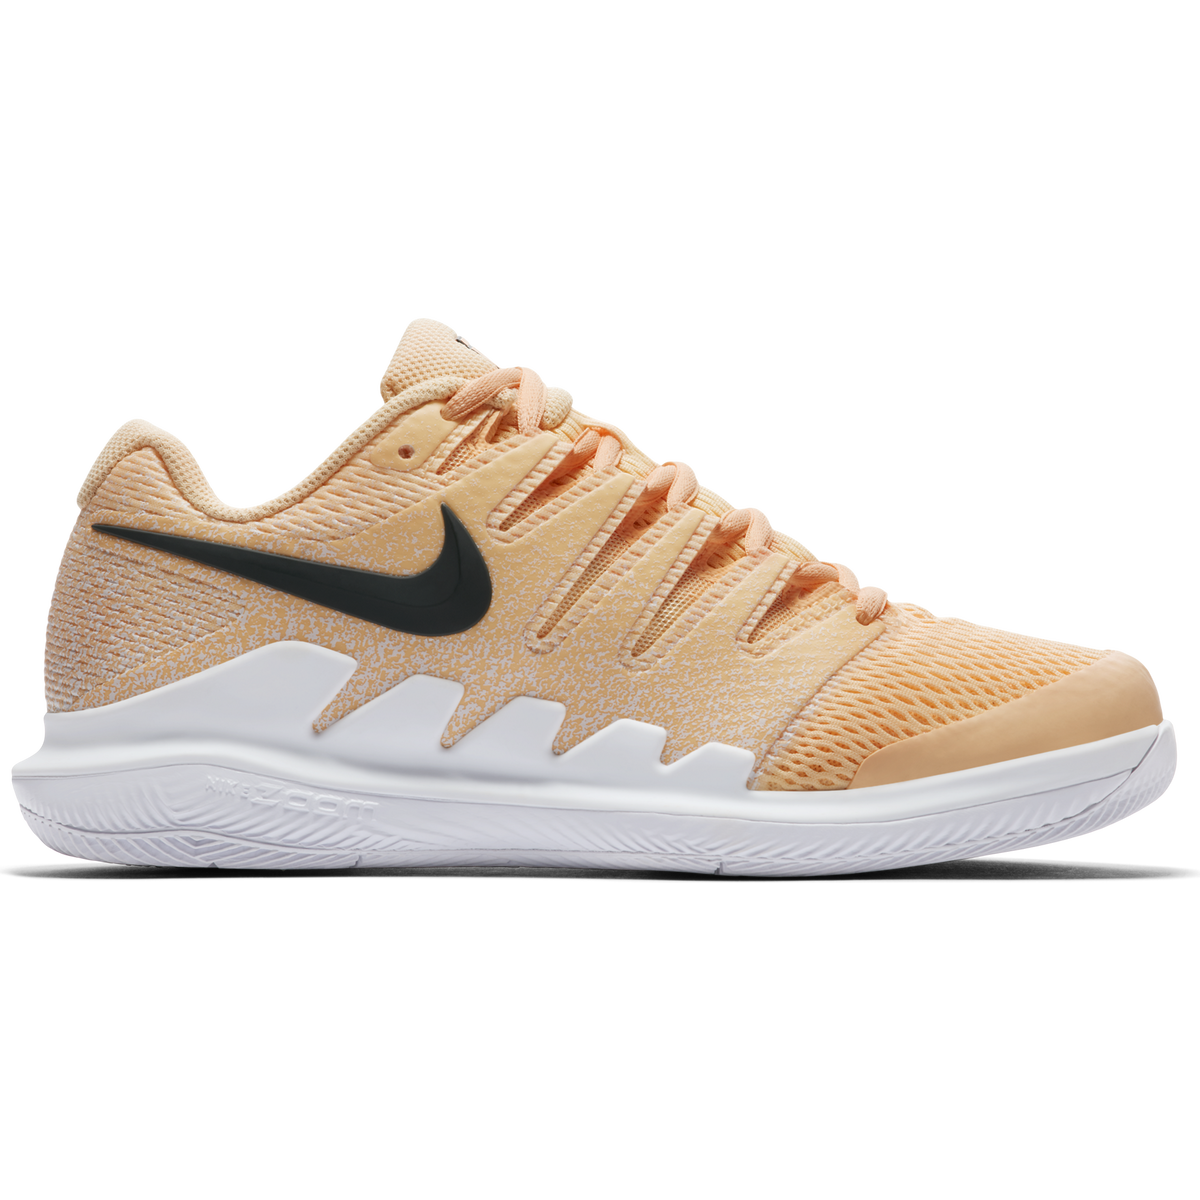 Nike Air Zoom Vapor X Womenӳ Tennis Shoe - Orange 689078e380c